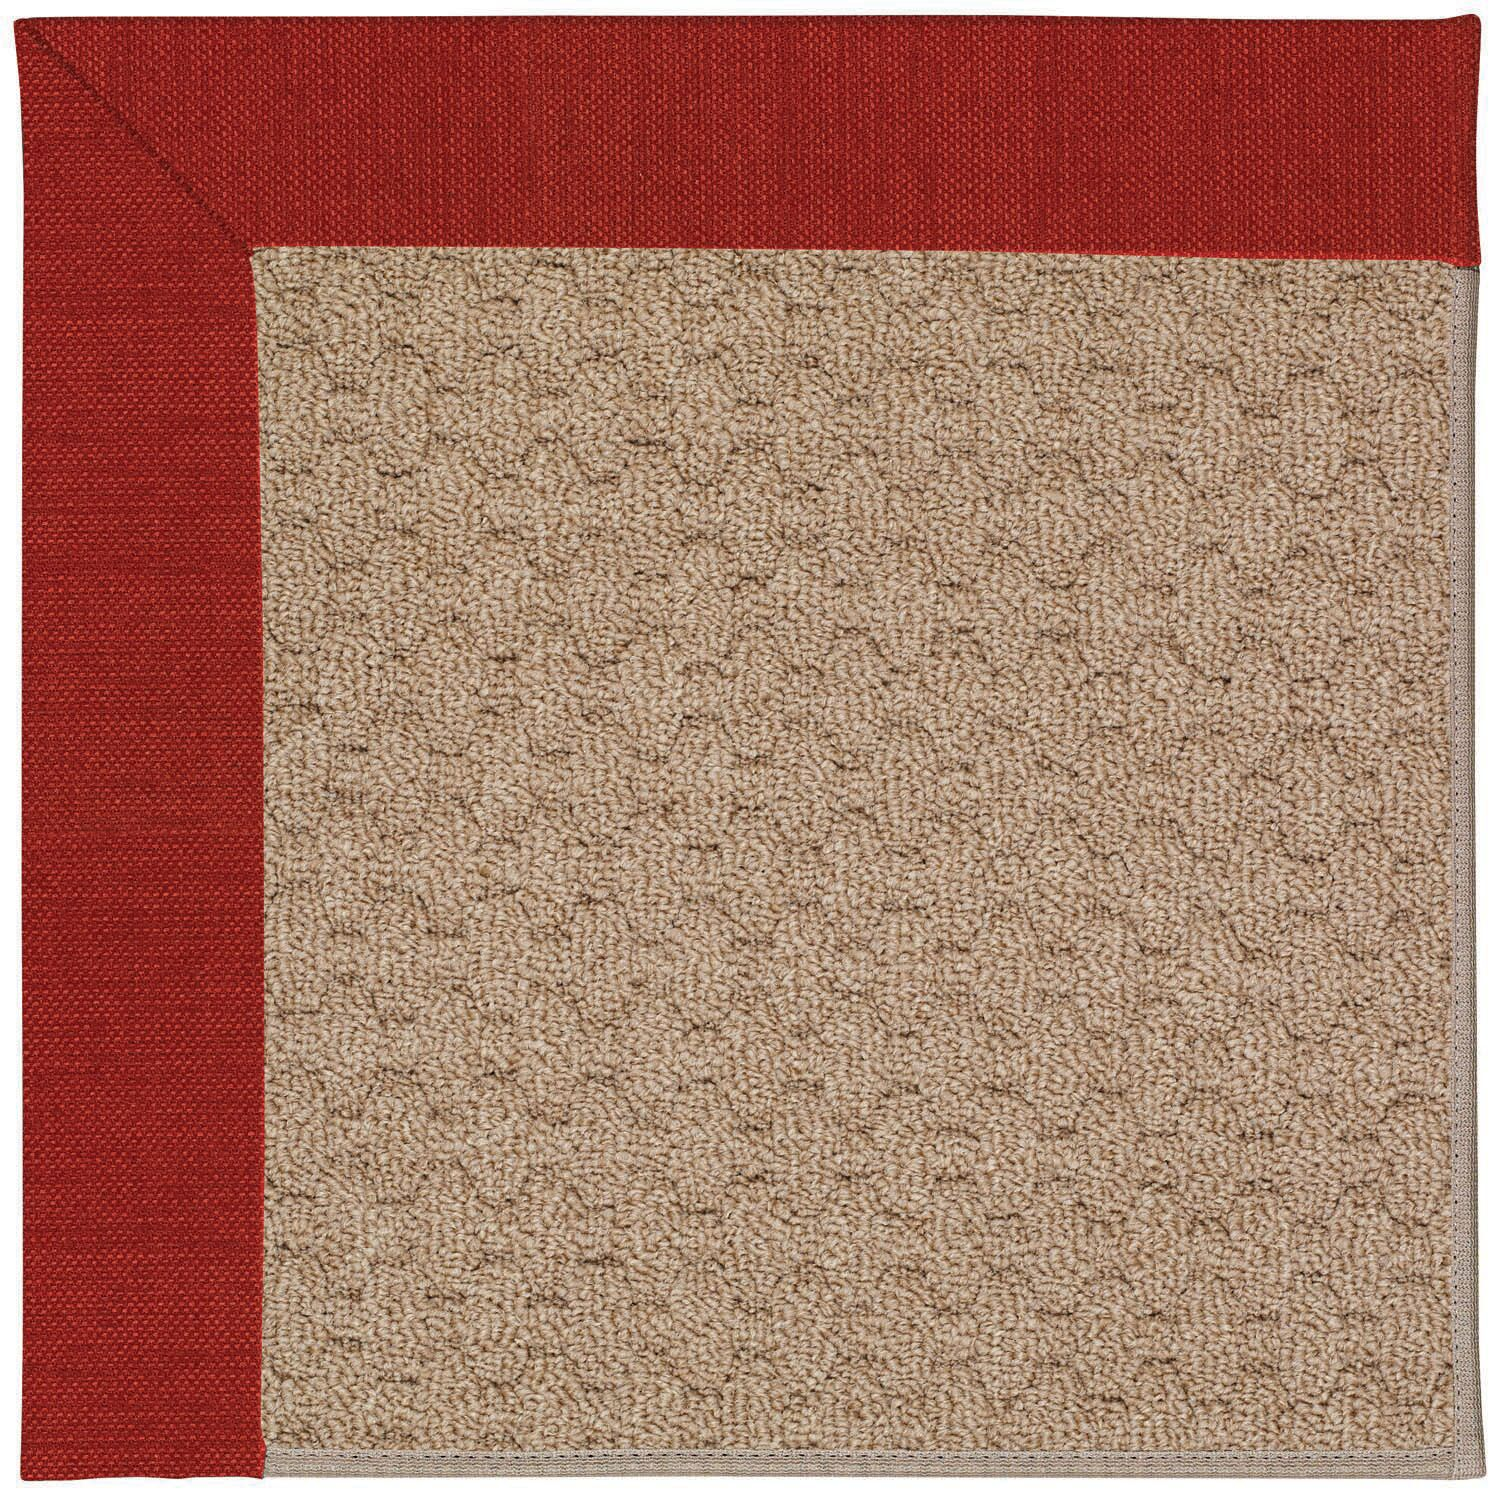 Lisle Machine Tufted Tomatoes/Brown Indoor/Outdoor Area Rug Rug Size: Square 4'